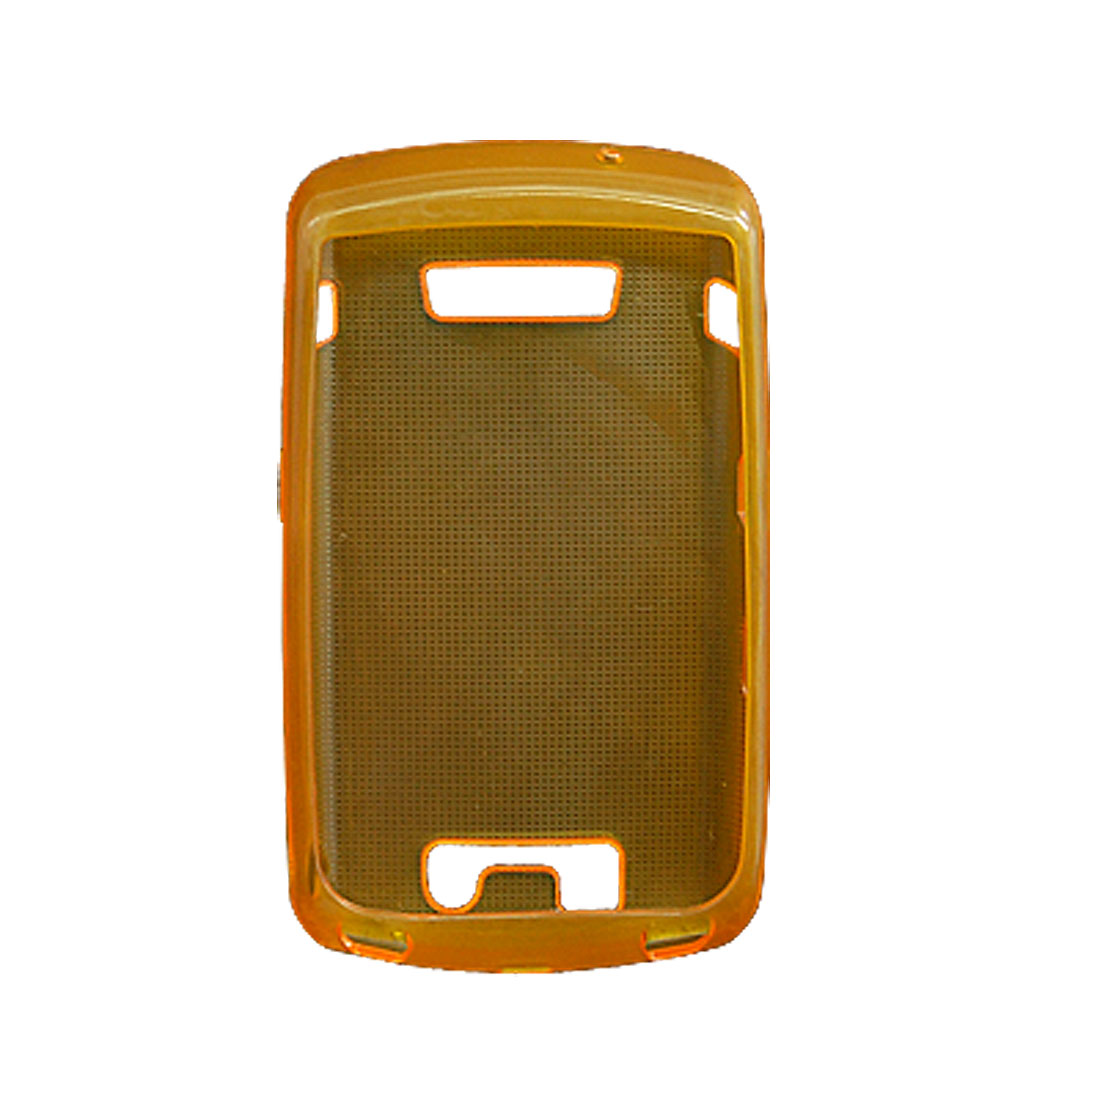 Soft Plastic Case Protector for Blackberry 9500 9530 Yellow